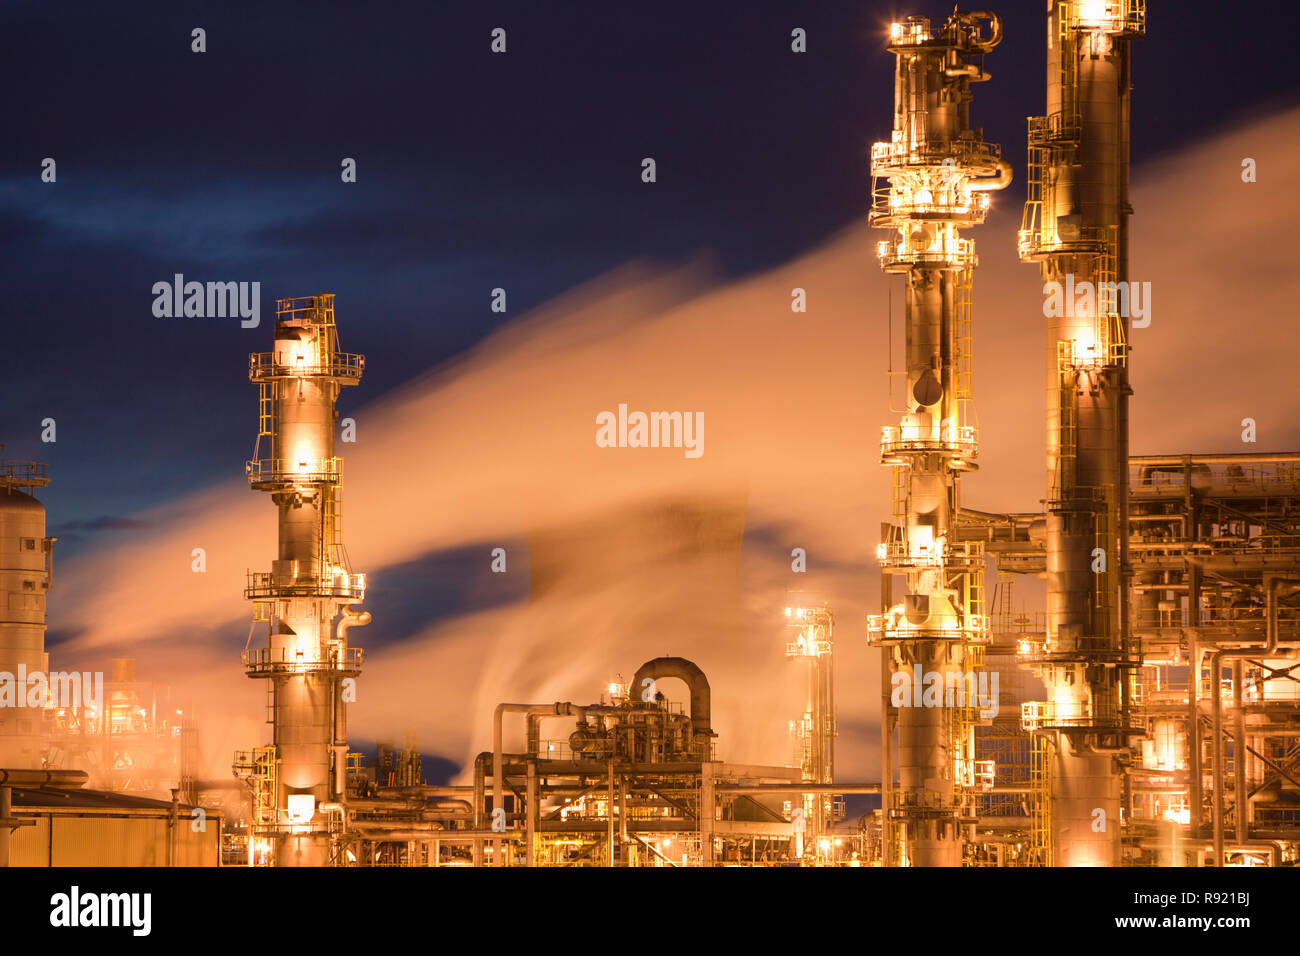 The oil refinery atGrangemouthin the Firth of Forth, Scotland, UK. It isScotland'sonly oil refinery. It takes oil from a pipeline from the Forties North Sea production area, and processes 10 million tones of crude oil a year. As such it is a large contributor to climate change. - Stock Image